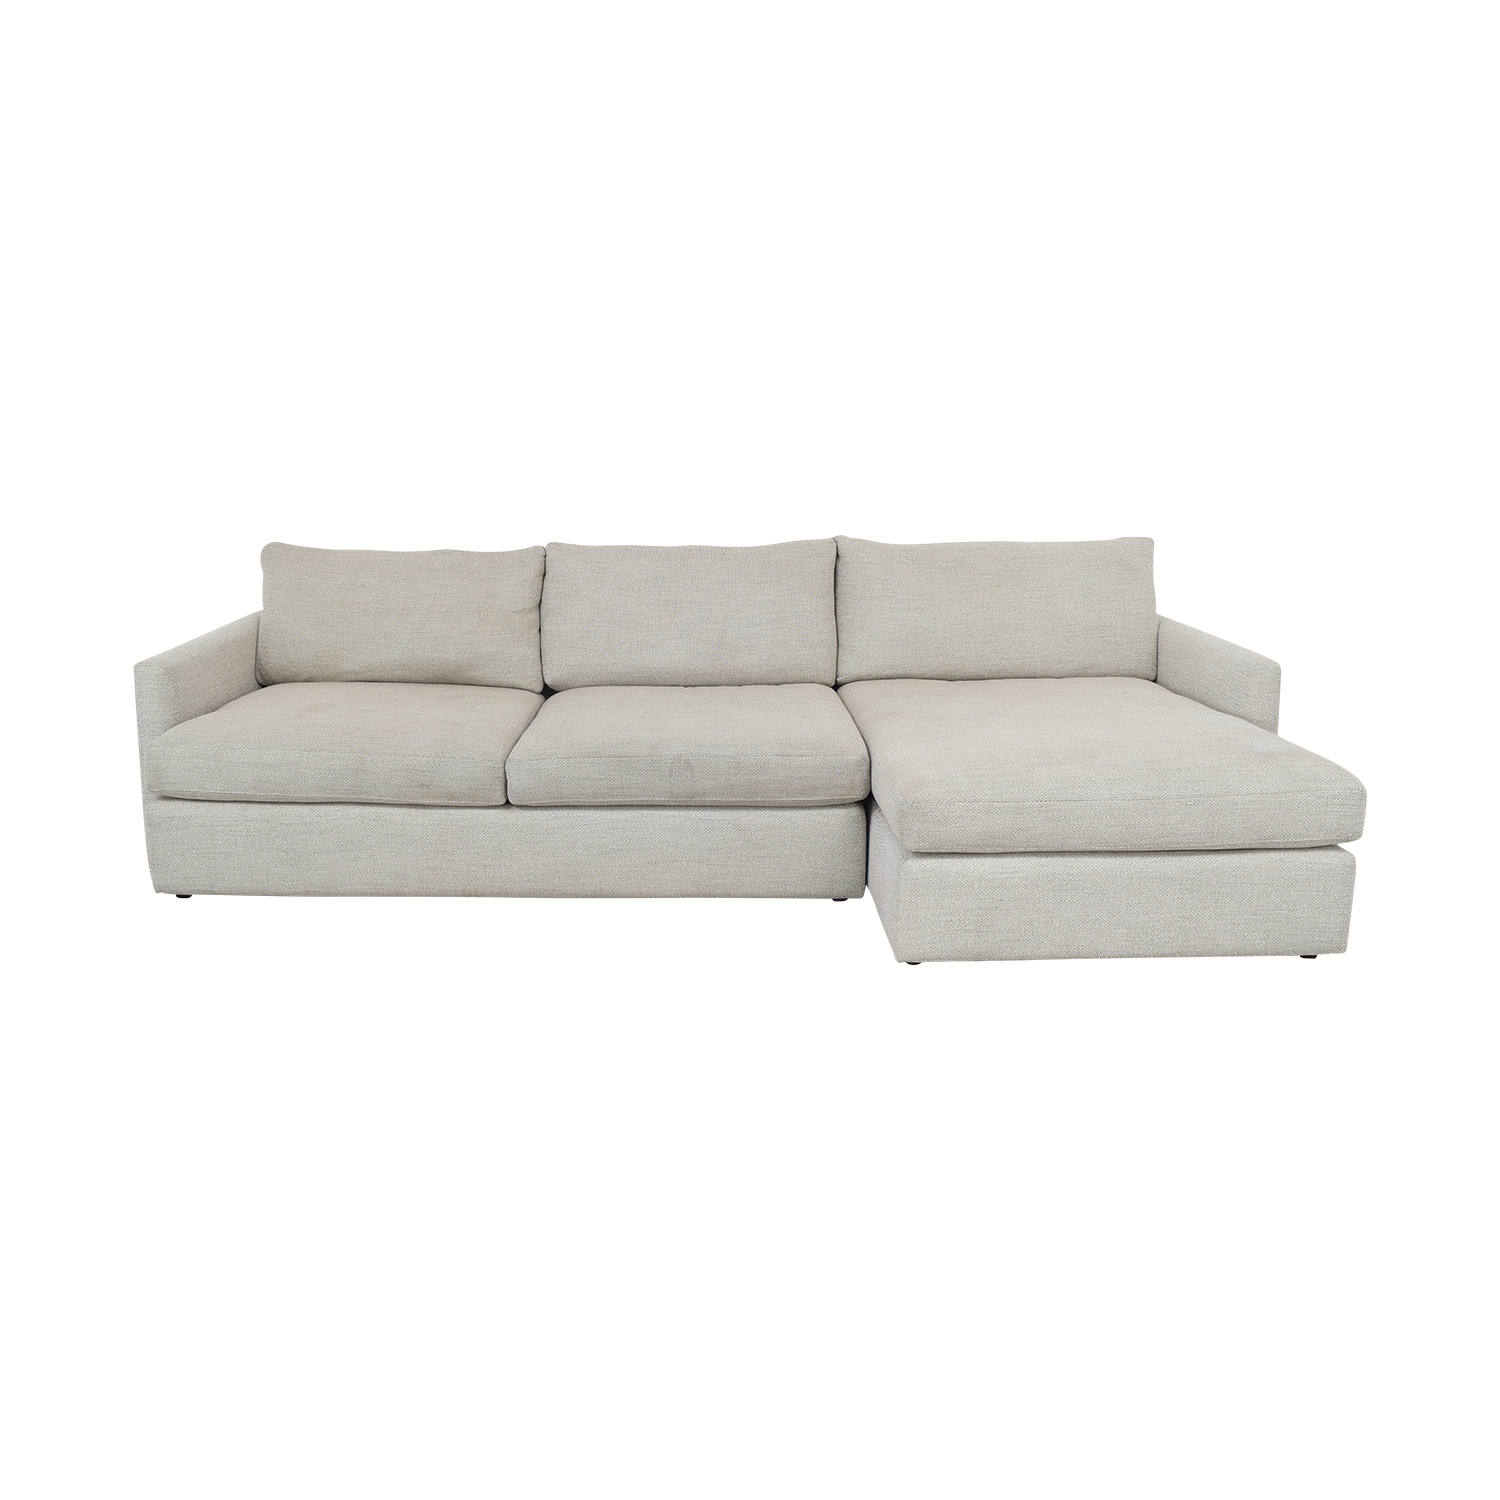 Crate & Barrel Crate & Barrel Lounge II 2-Piece Sectional Sofa